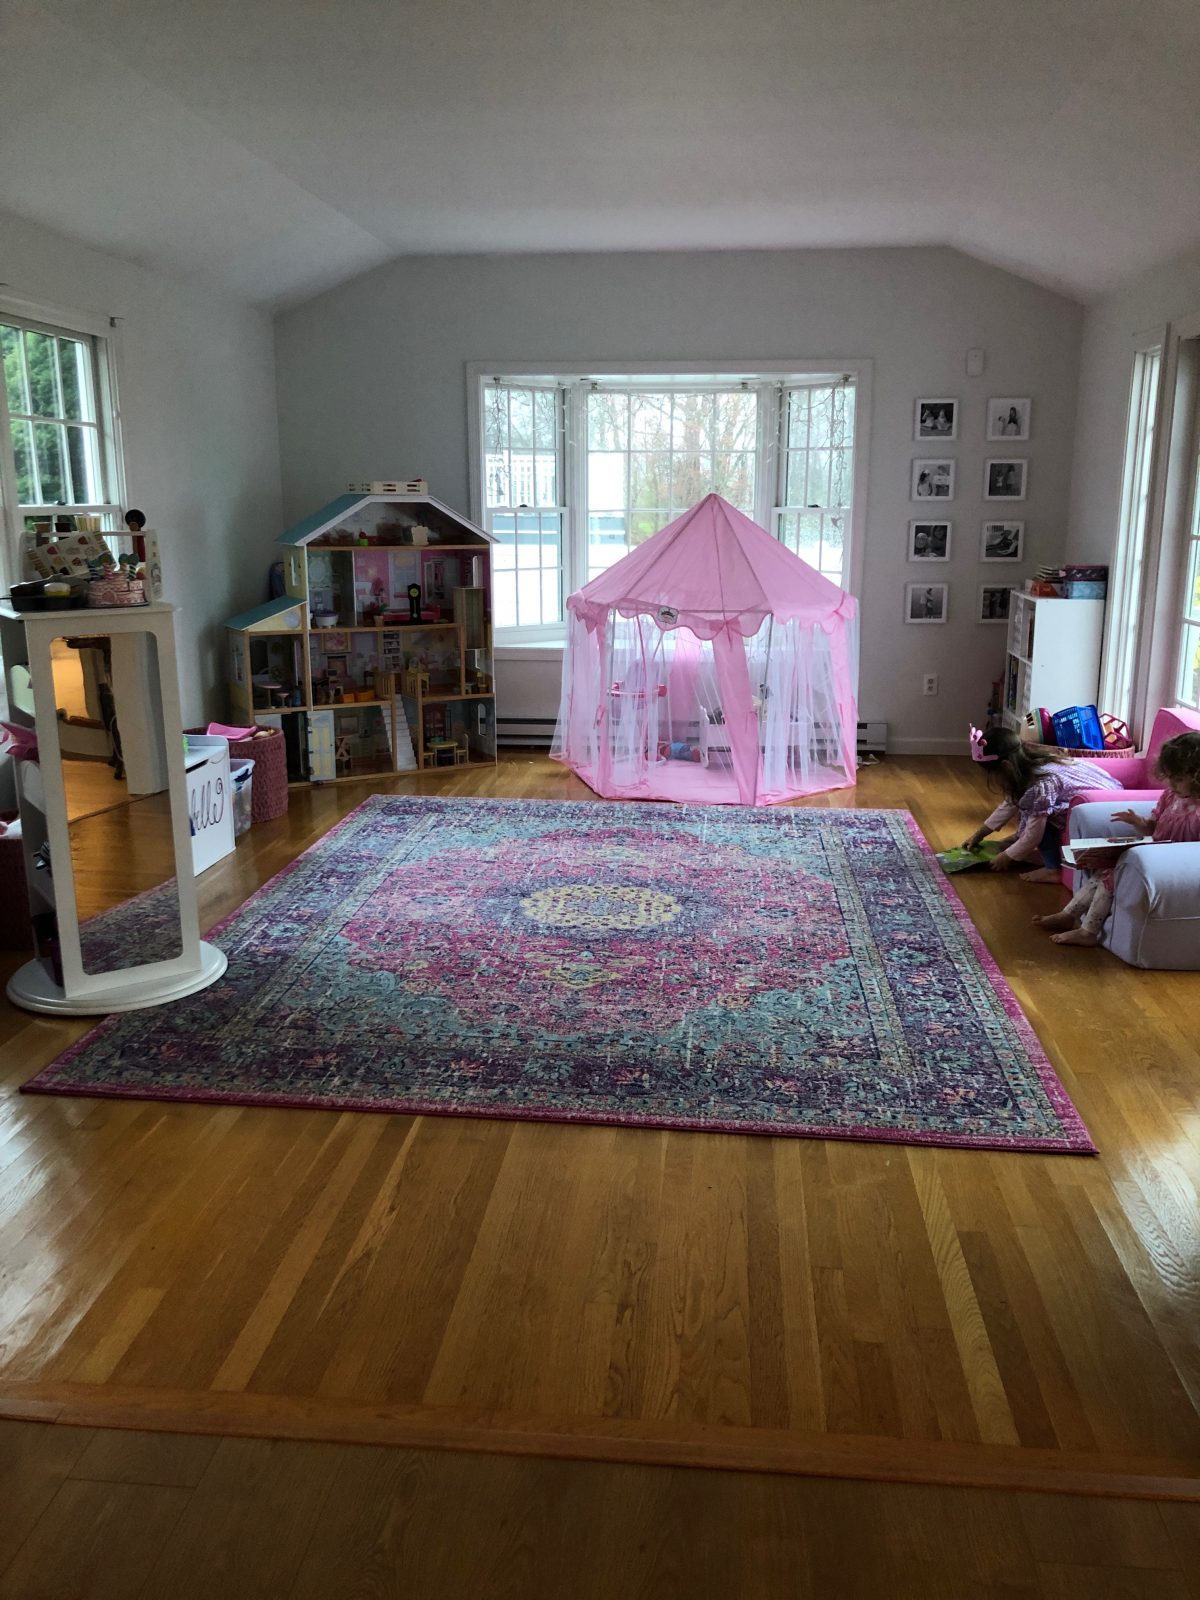 playroom with pink rug and pink tent